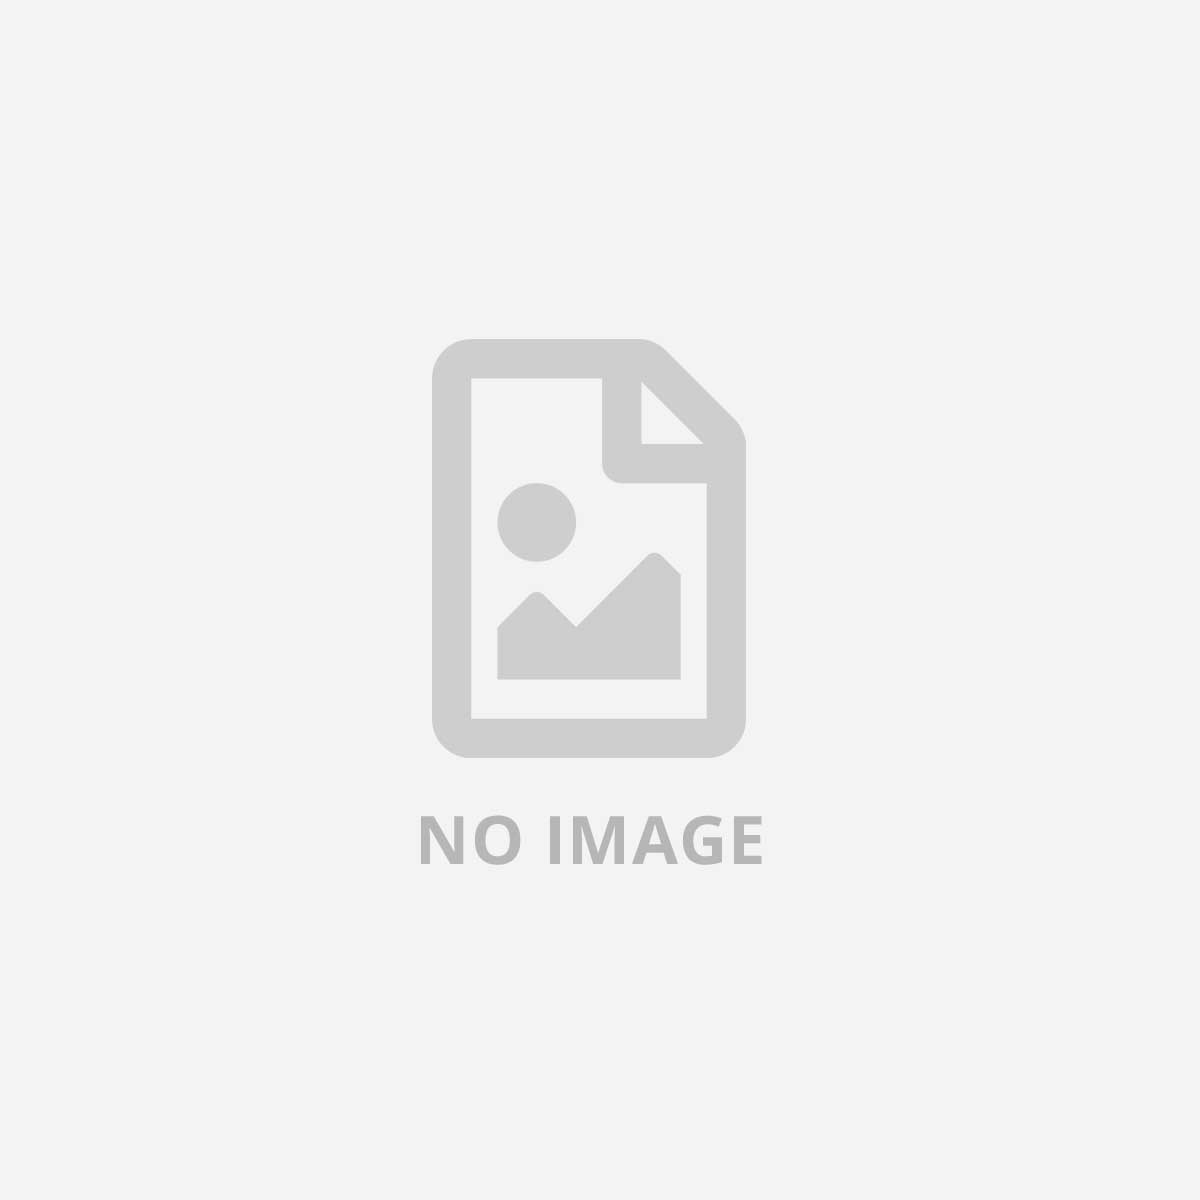 KOCH MEDIA PC AGENTS OF MAYHEM